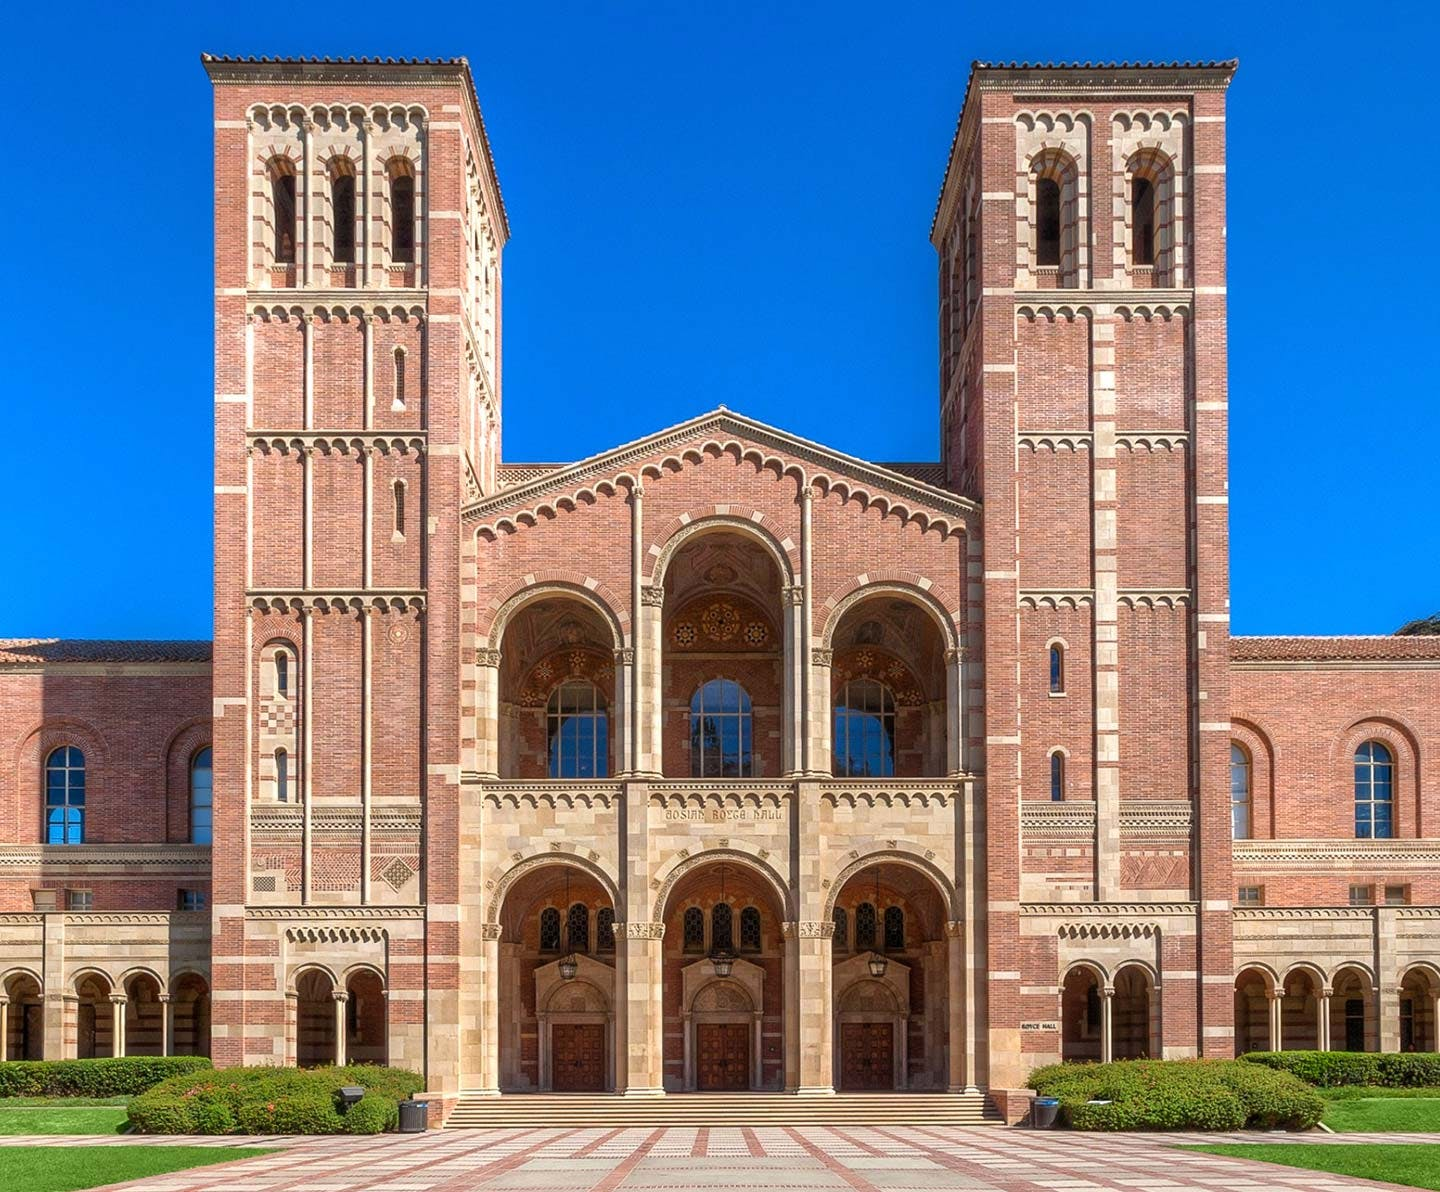 A picture of Royce Hall at UCLA